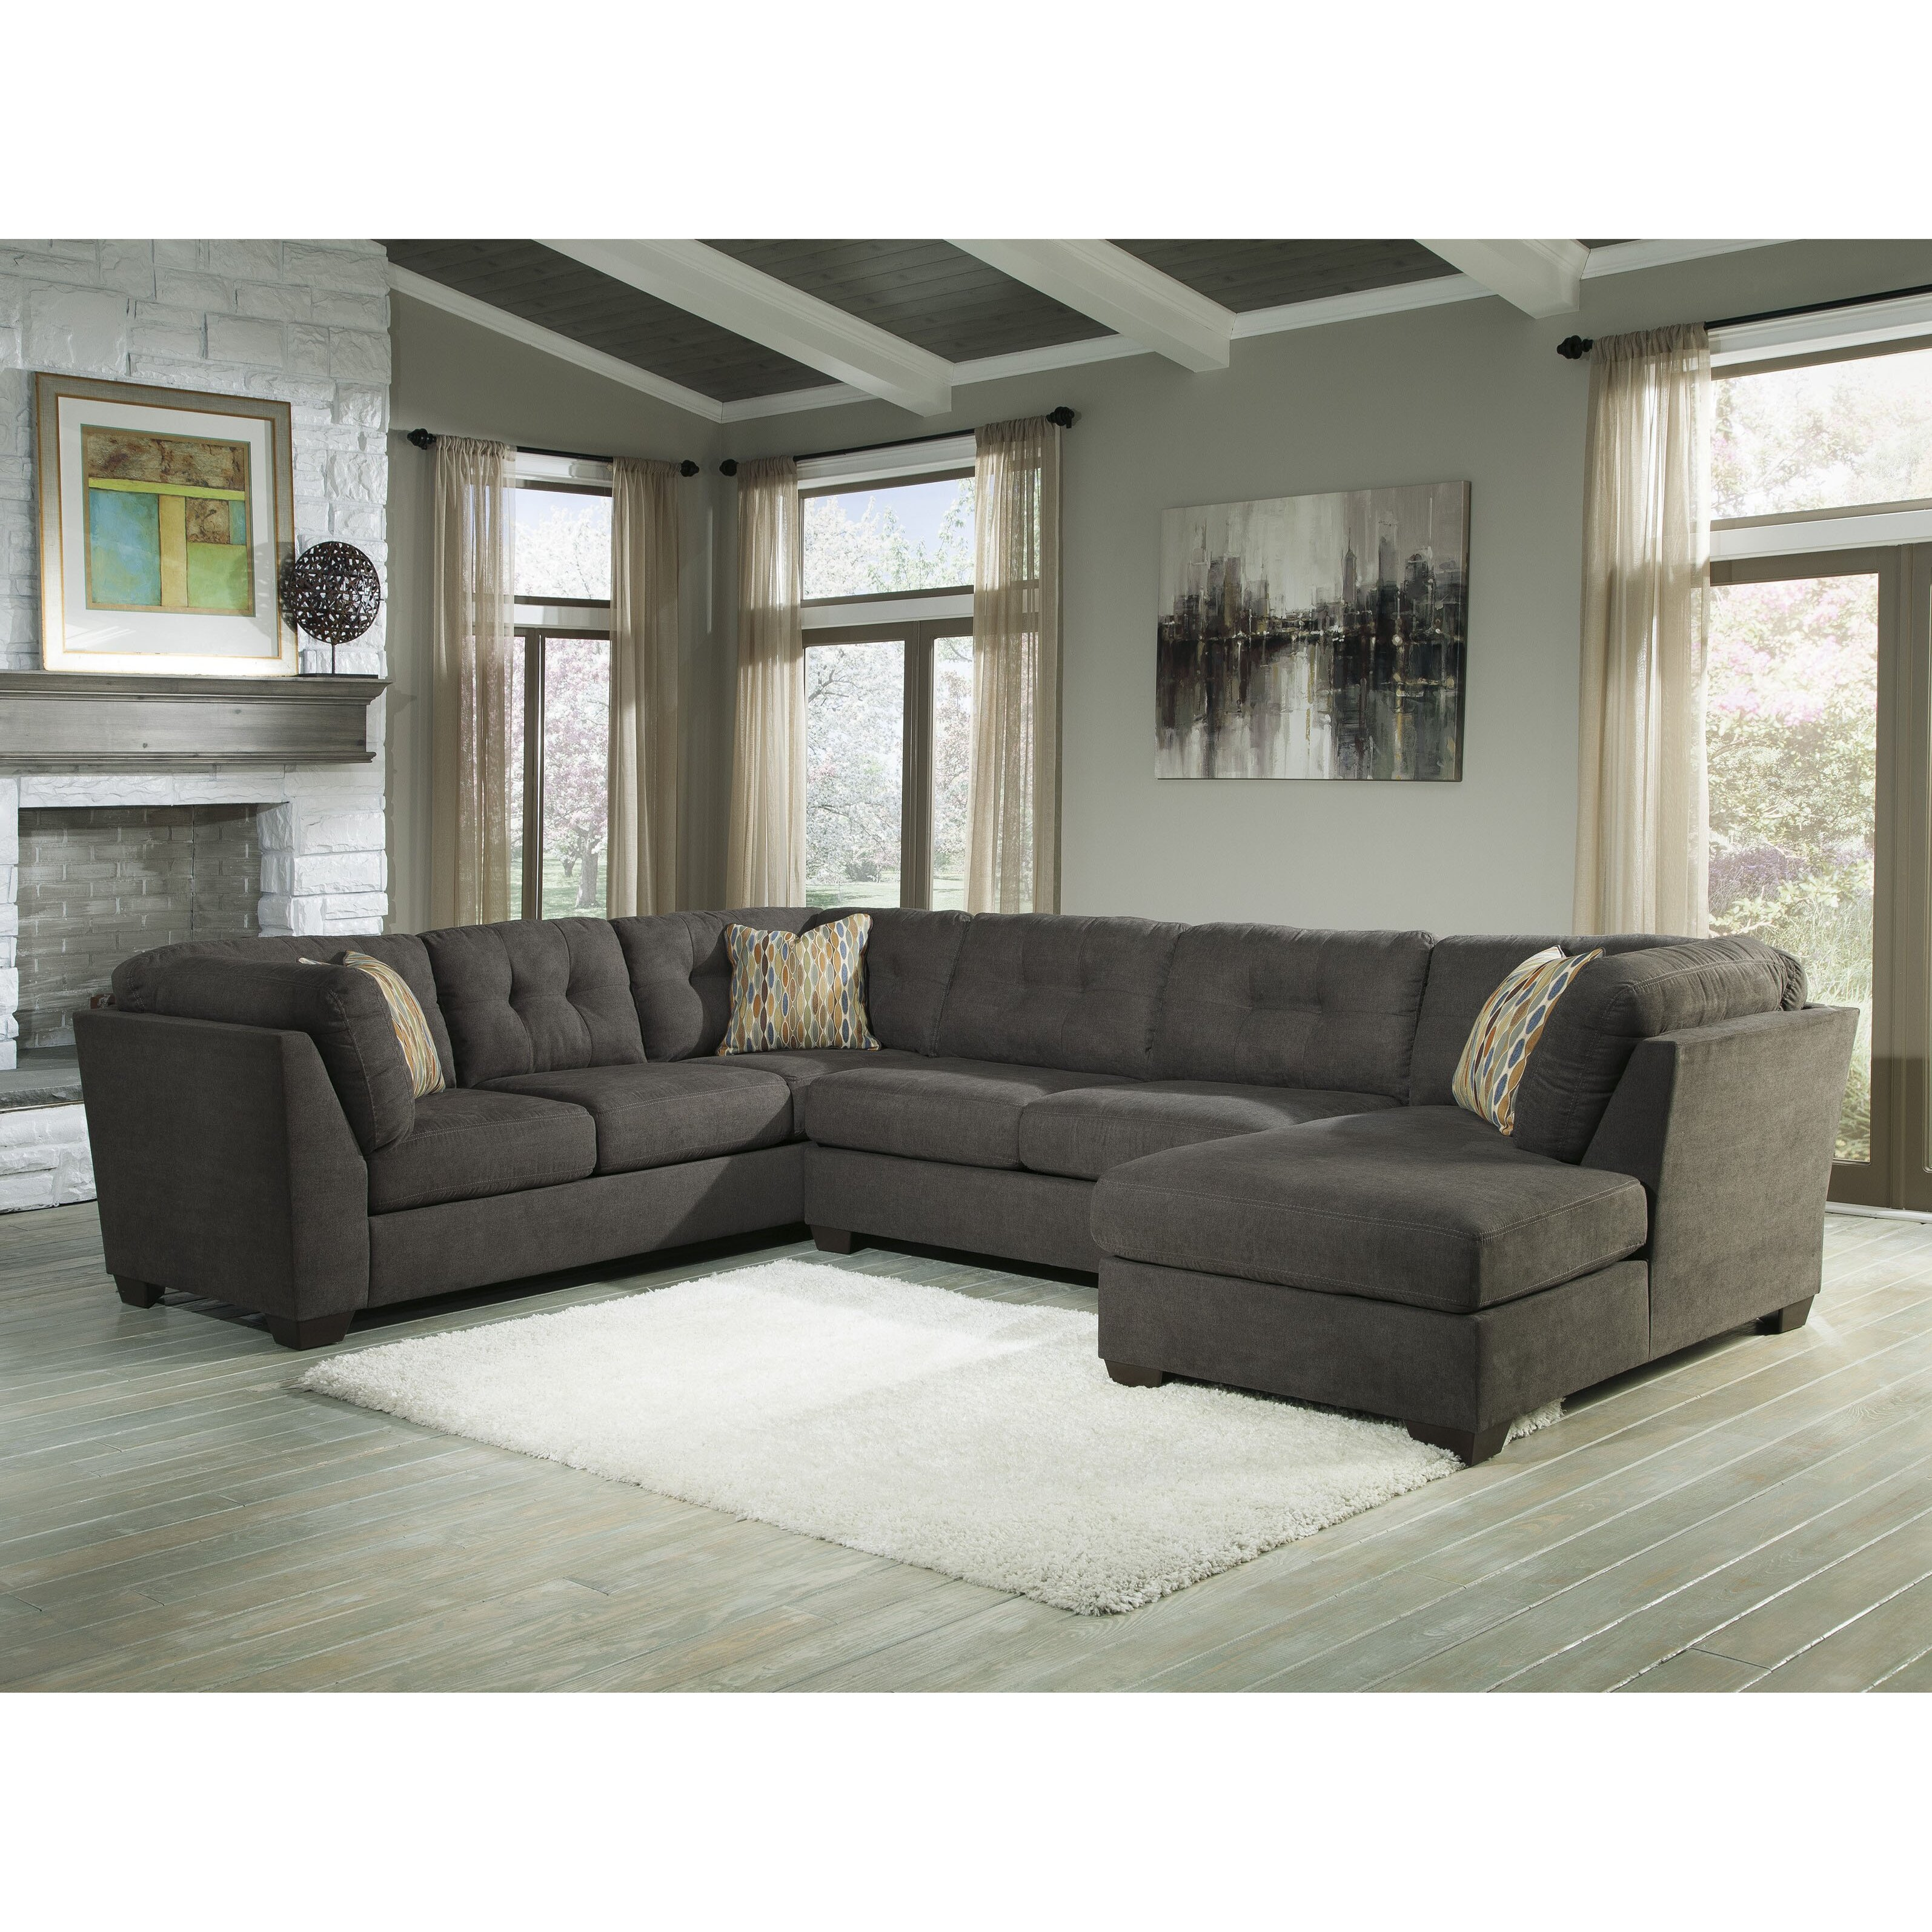 Benchcraft Delta City Right Sectional Reviews Wayfair